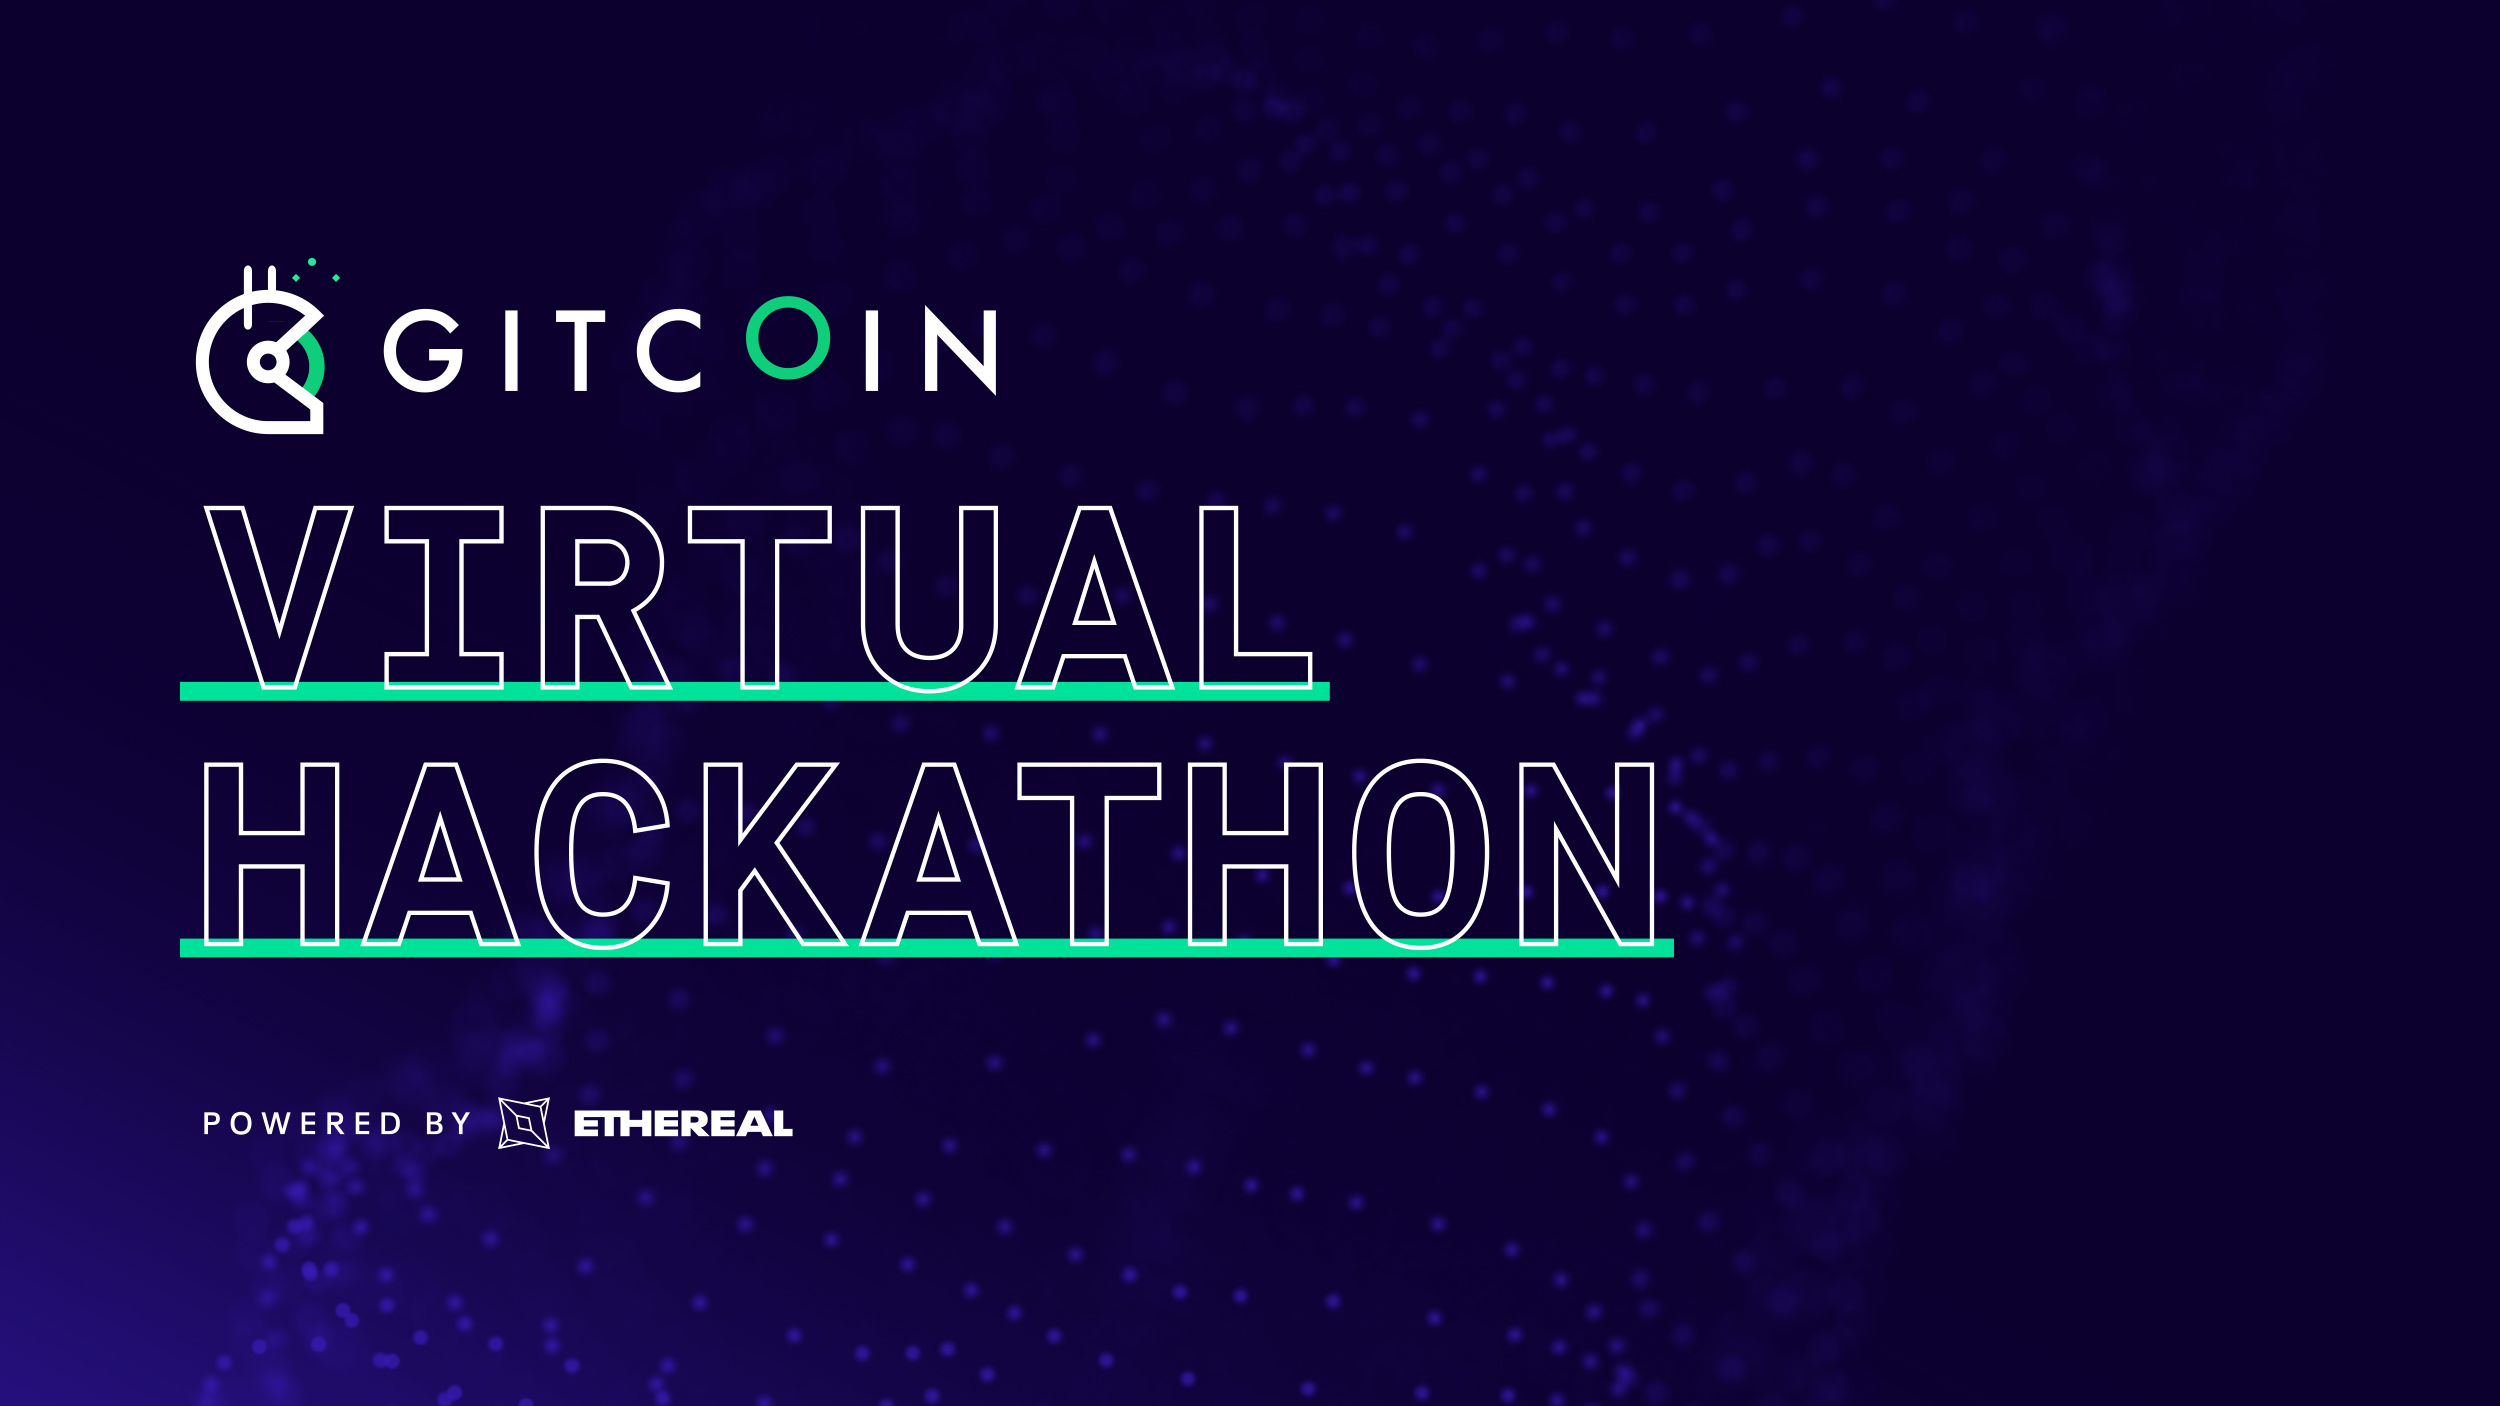 Ethereal Blocks Hackathon - Virtual hackathon powered by Ethereal, Gitcoin, and the Ethereum Foundation.